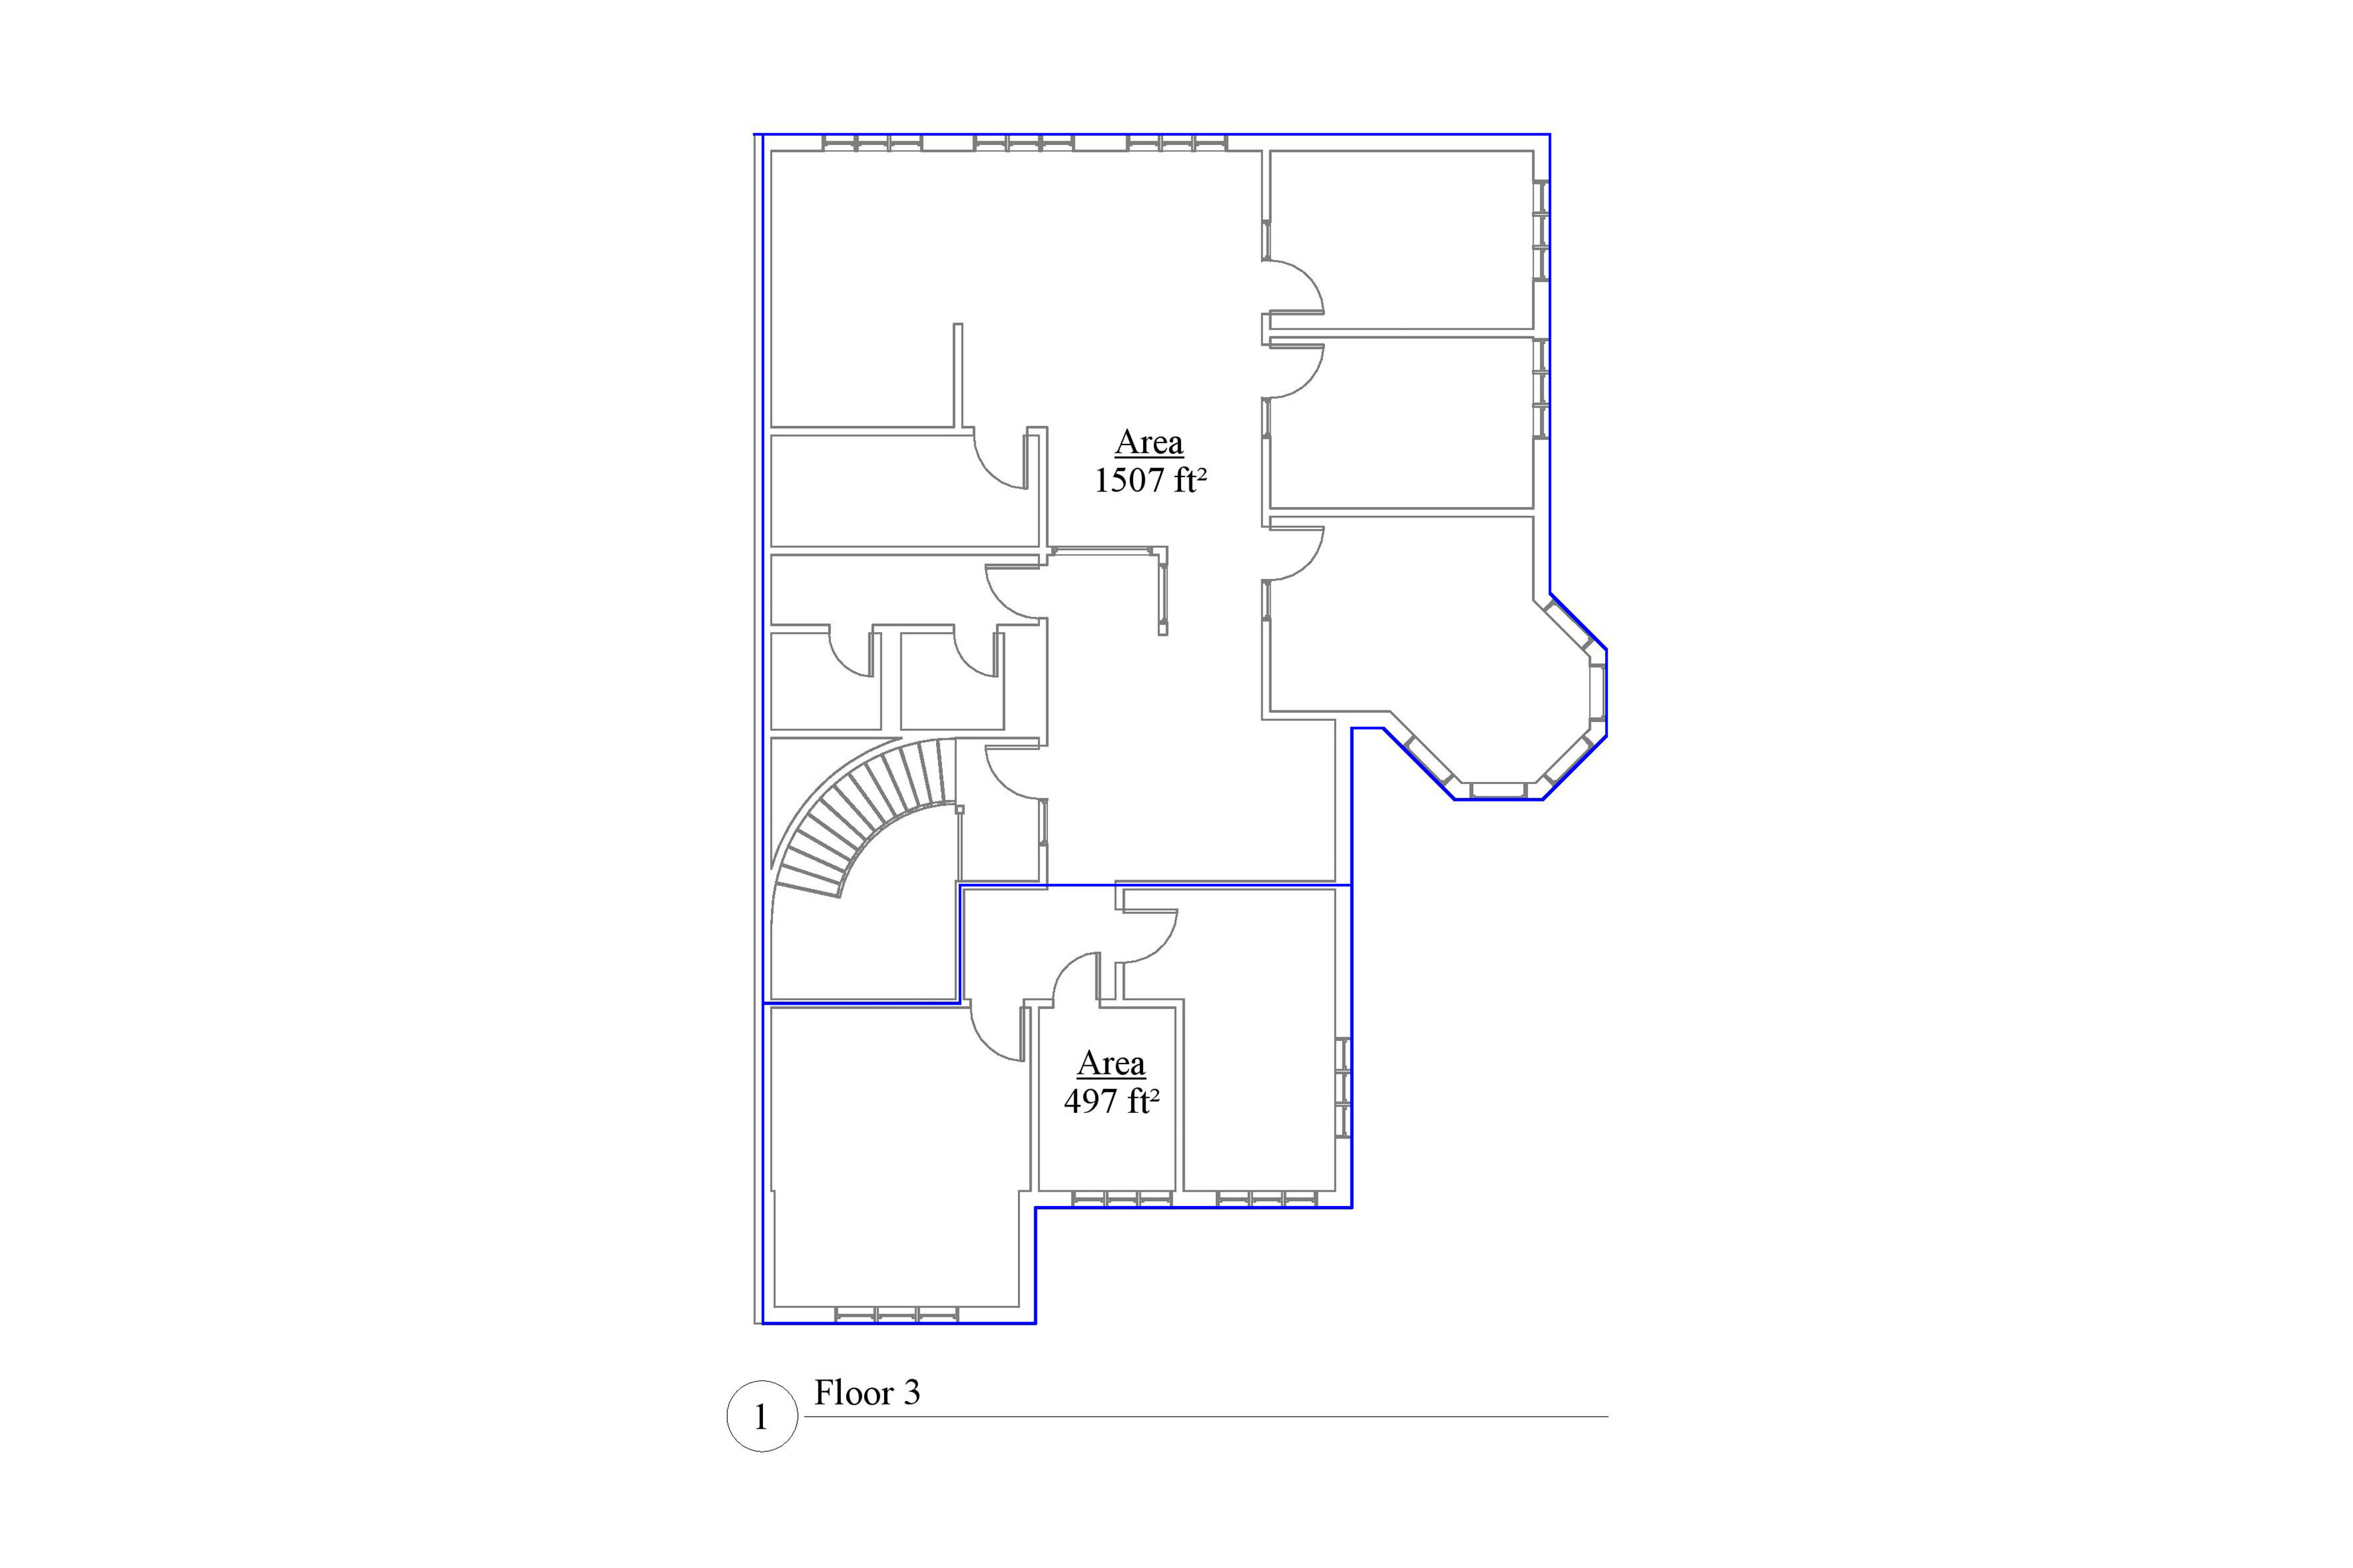 an AutoCad drawing of the Area Analysis plan for a two thousand and four square foot residential house.